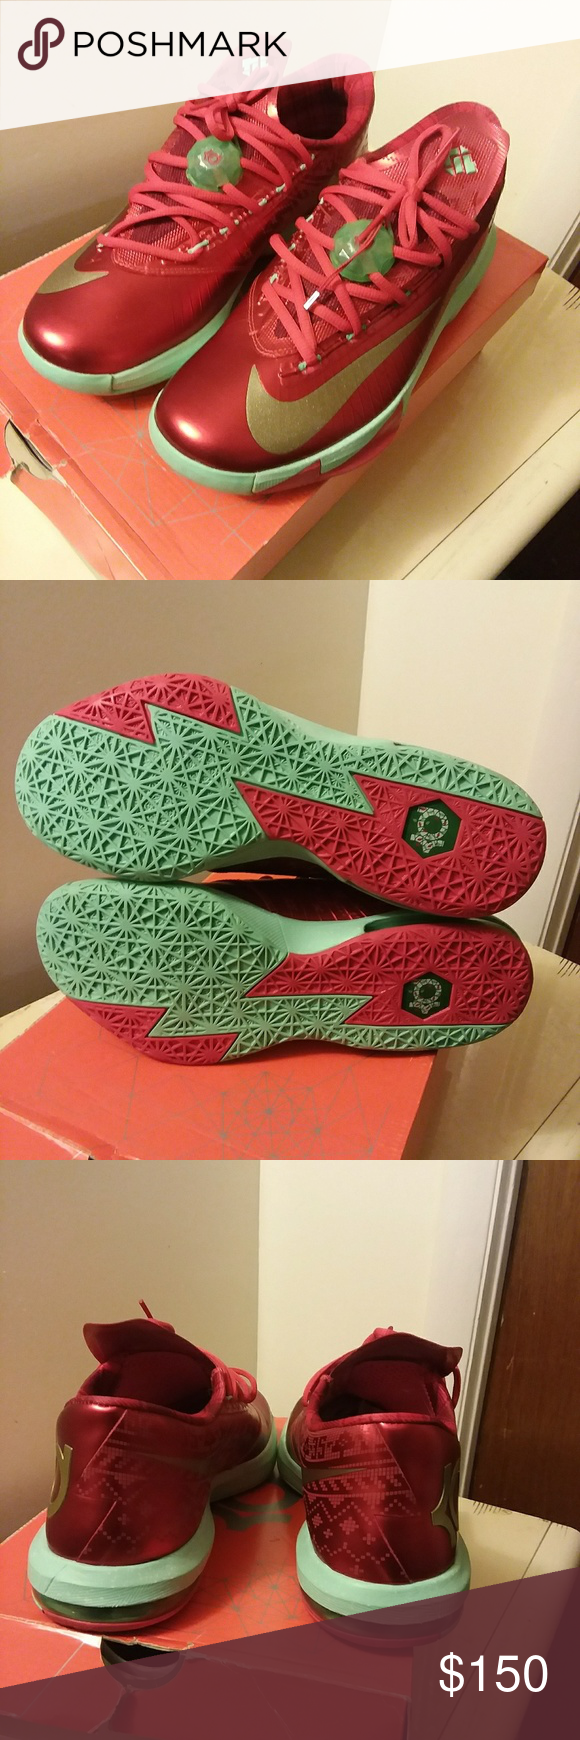 Nike KD6 Christmas | My Posh Picks | Pinterest | Size 10, Shoes ...